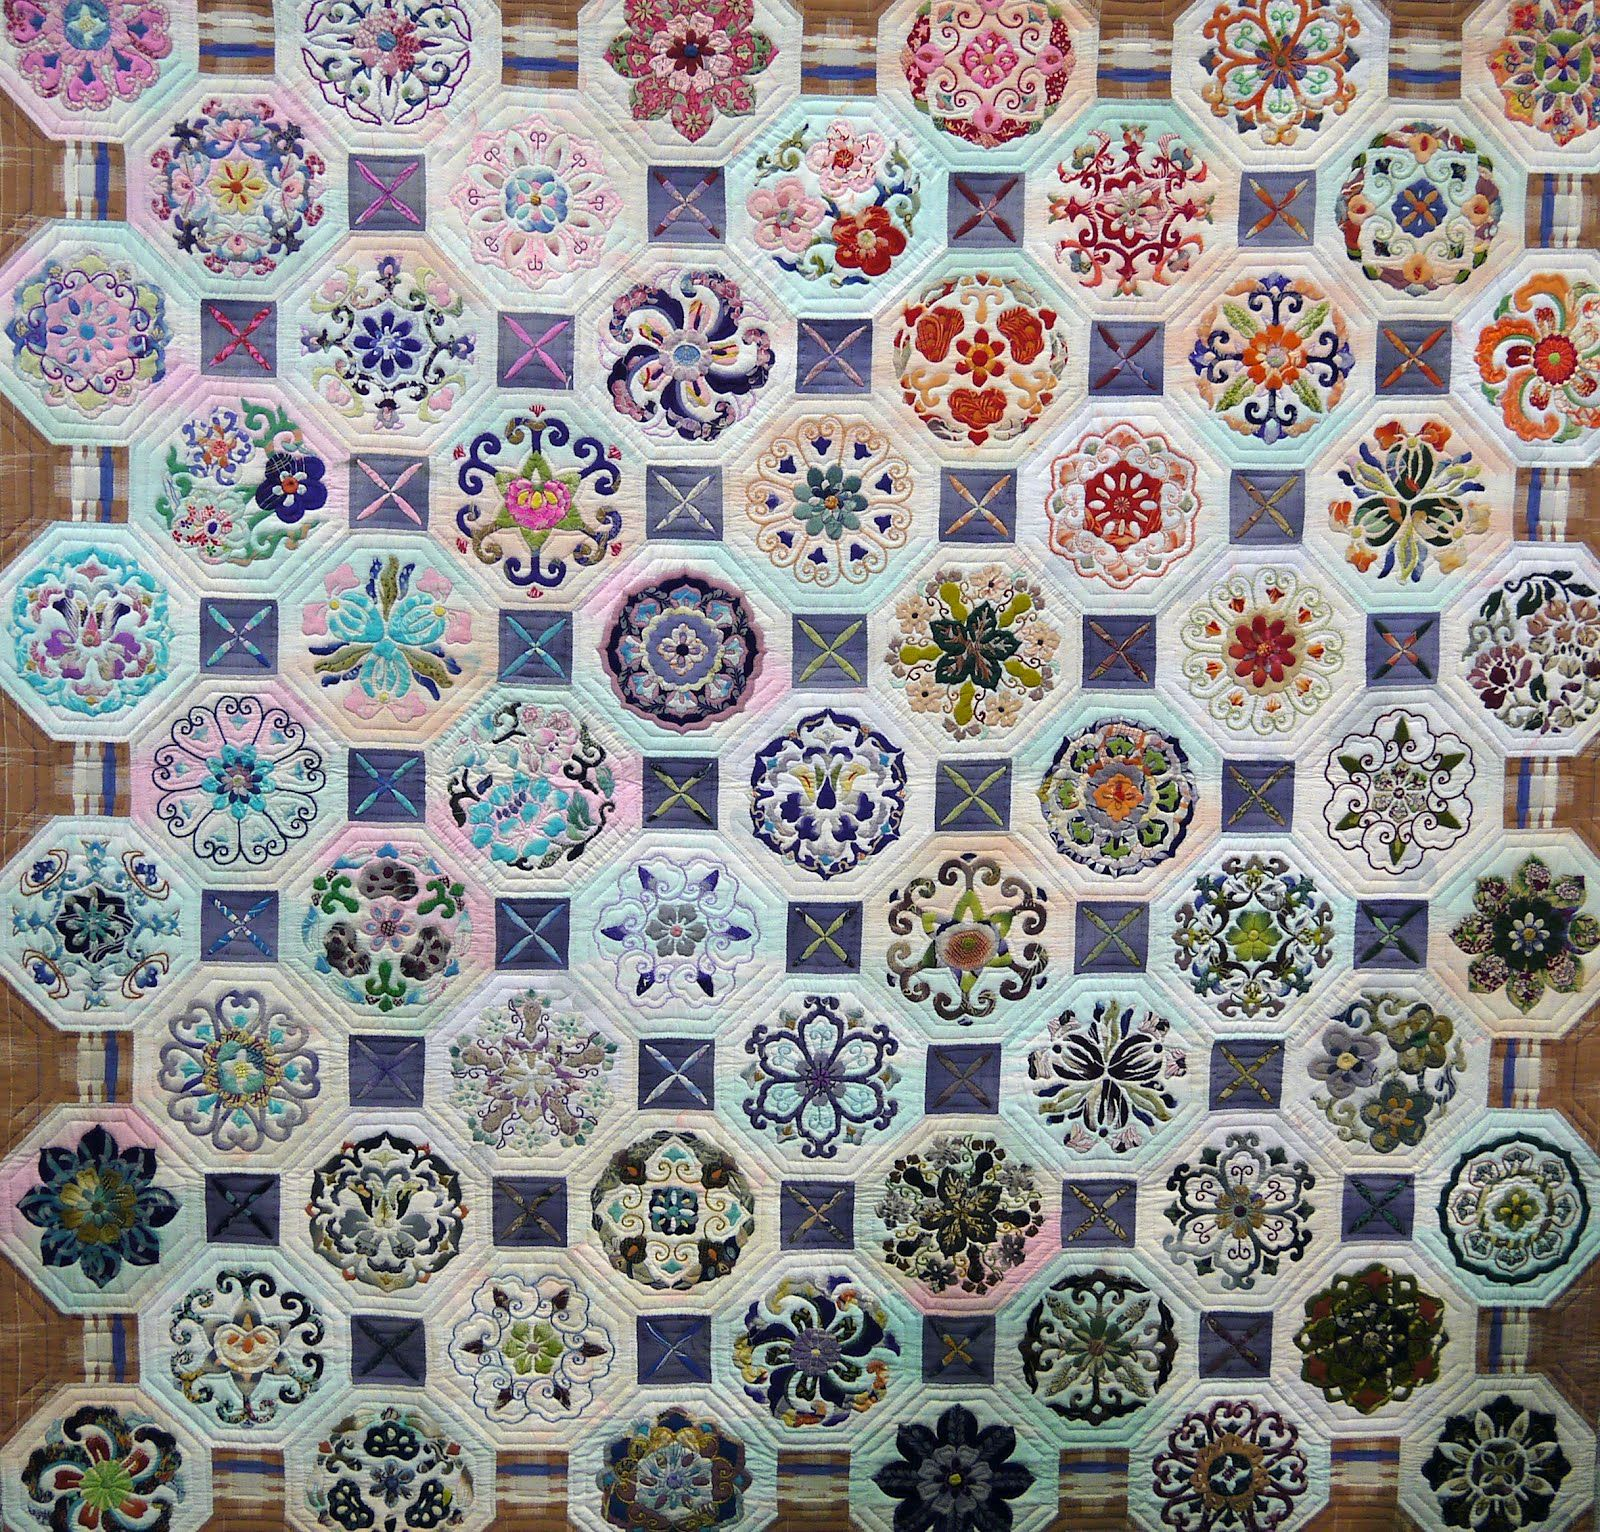 Seams French Alsace Quilts Quilt patterns Pinterest